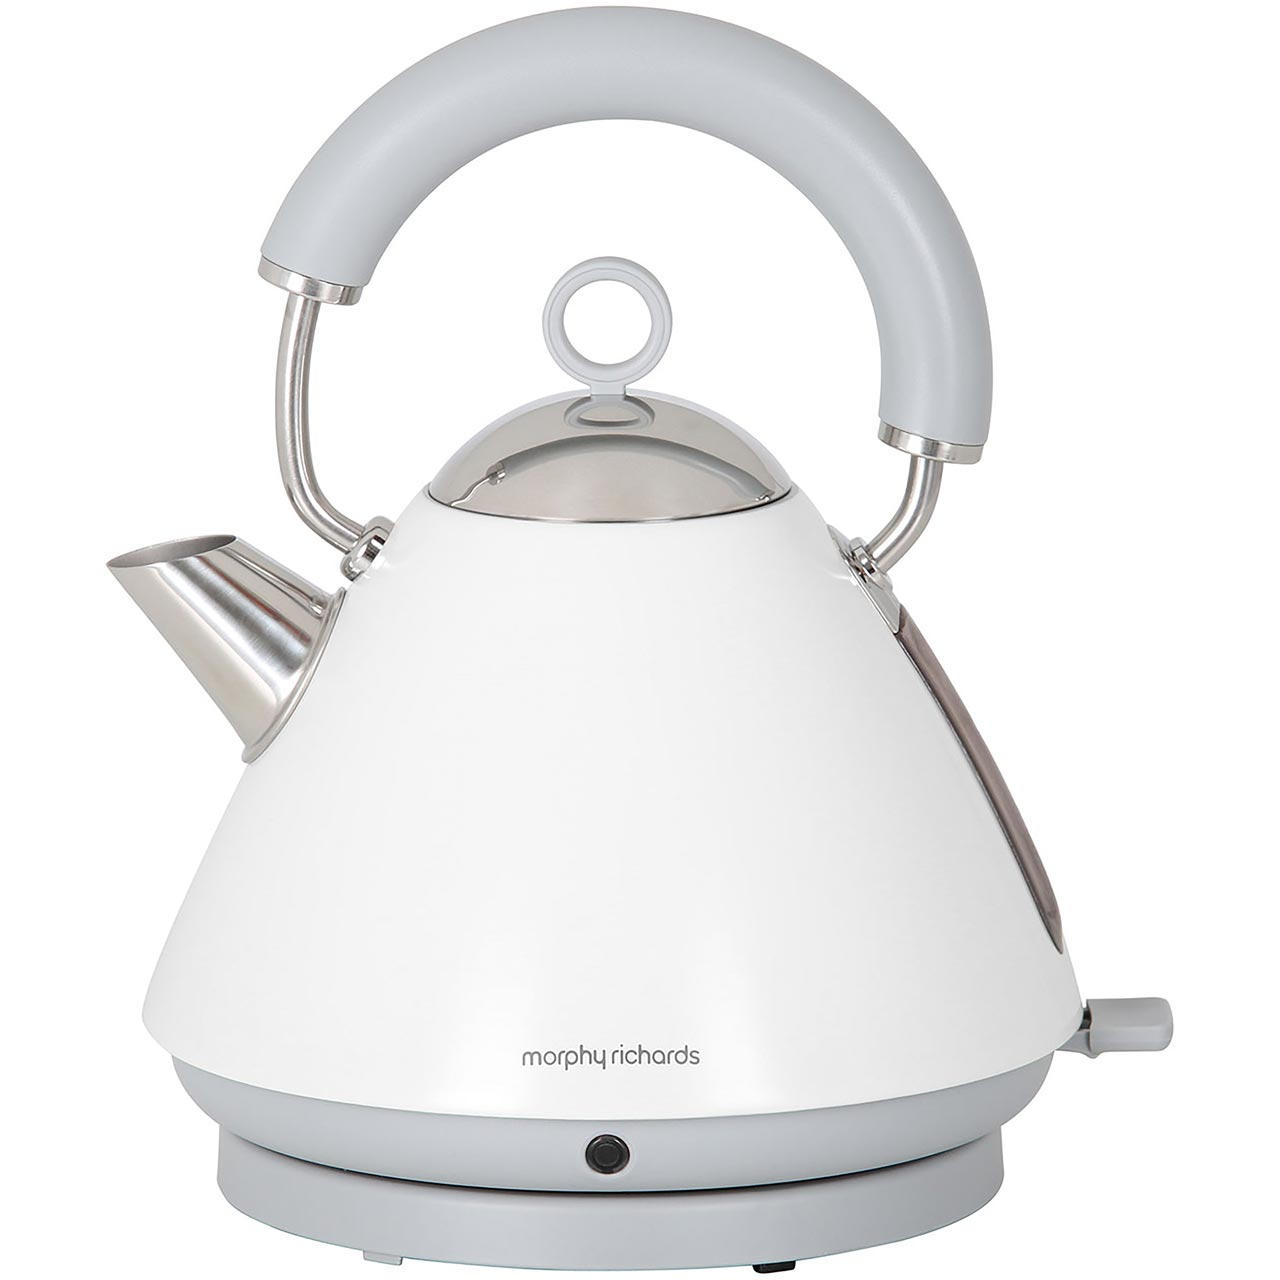 Morphy Richards Kettle: Morphy Richards 102031 Accents Kettle Limescale Filter 3000 Watt White New From 5011832052278